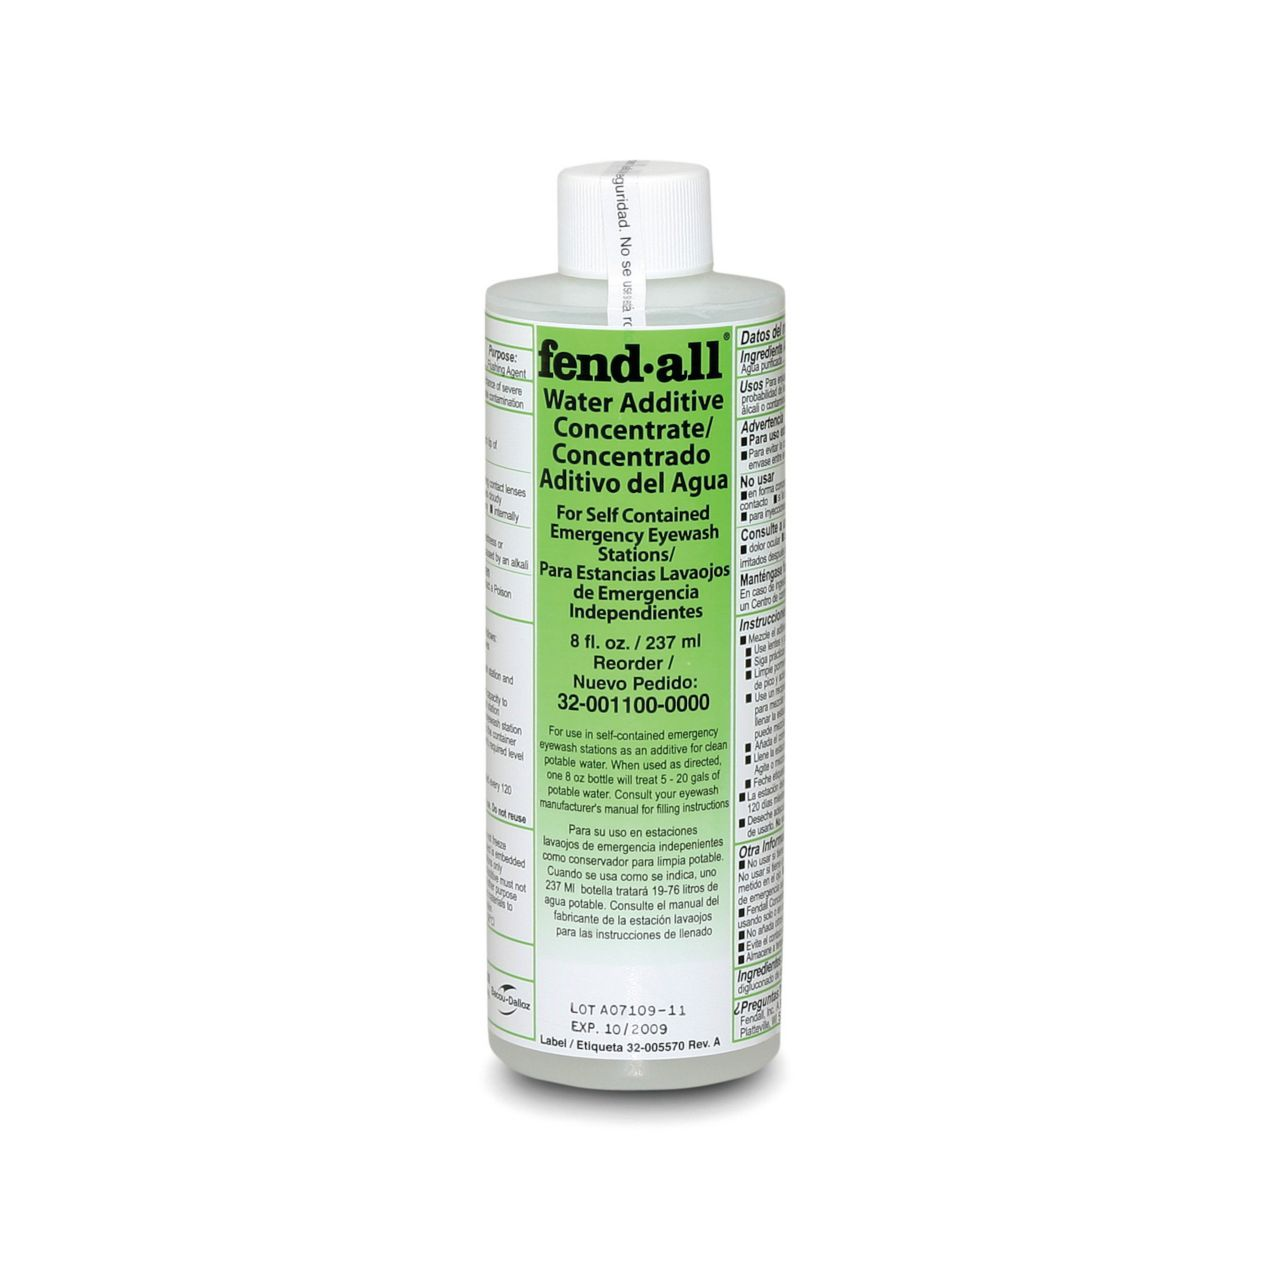 HS_portastream_replacement_water_additive_fend_h20add_32-001100-0000